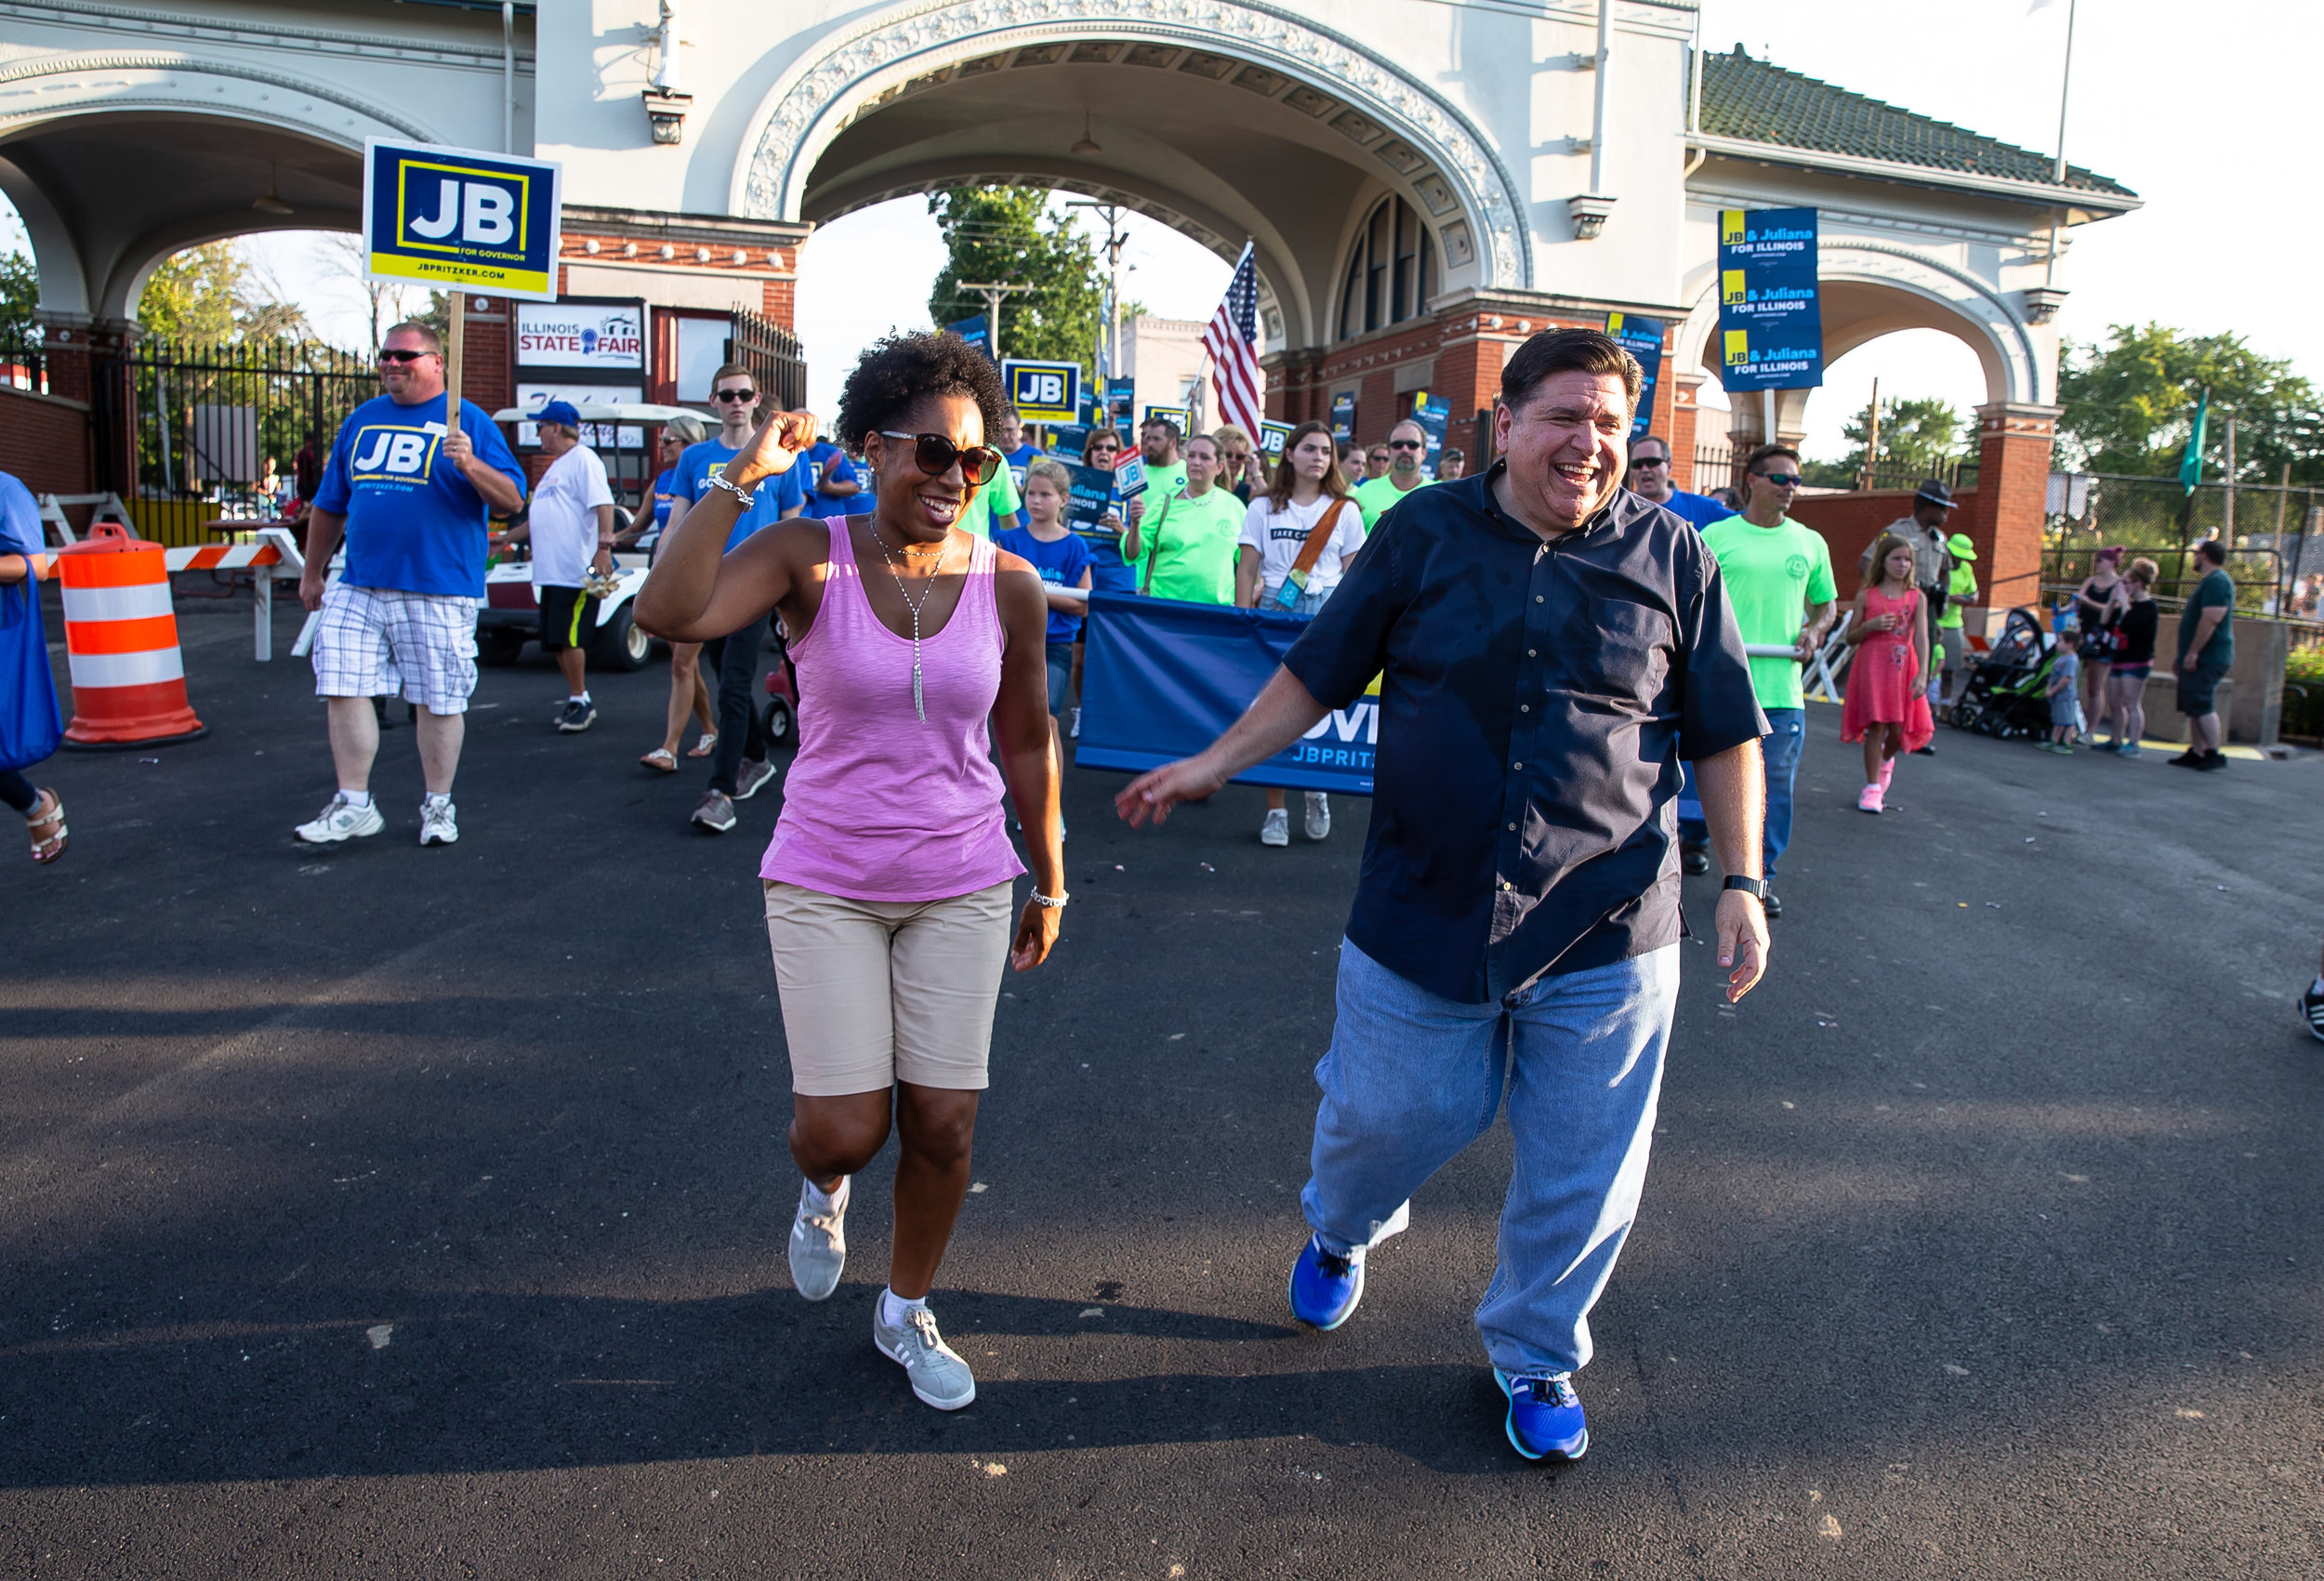 Democratic gubernatorial candidate J.B. Pritzker and his running mate Juliana Stratton enter the the Main Gate as they march during the Illinois State Fair Twilight Parade, Thursday, Aug. 9, 2018, in Springfield, Ill. [Justin L. Fowler/The State Journal-Register]